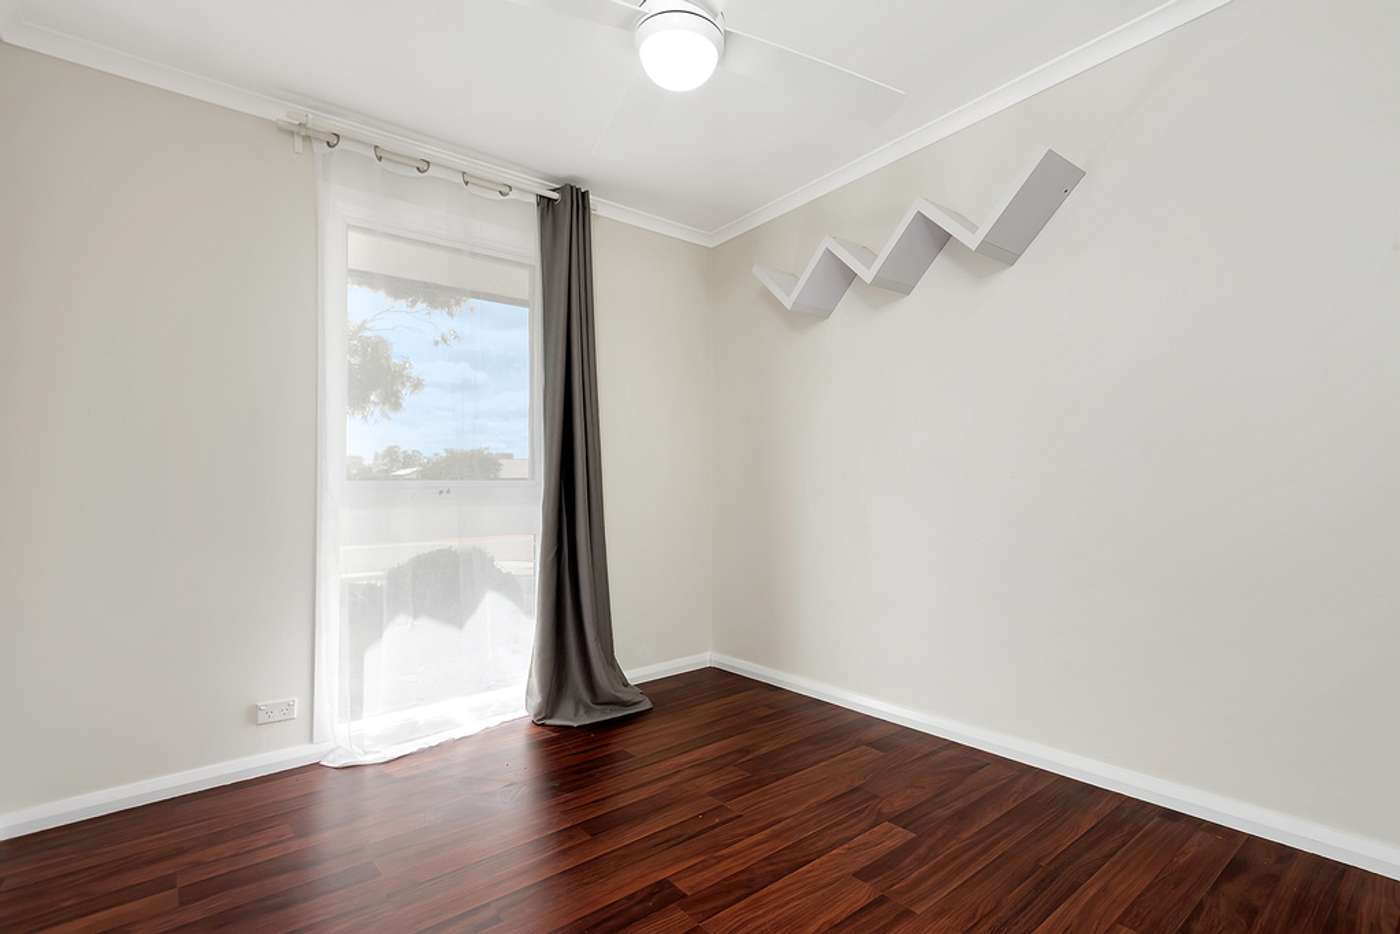 Seventh view of Homely house listing, 50 Sir Ross Smith Drive, North Haven SA 5018